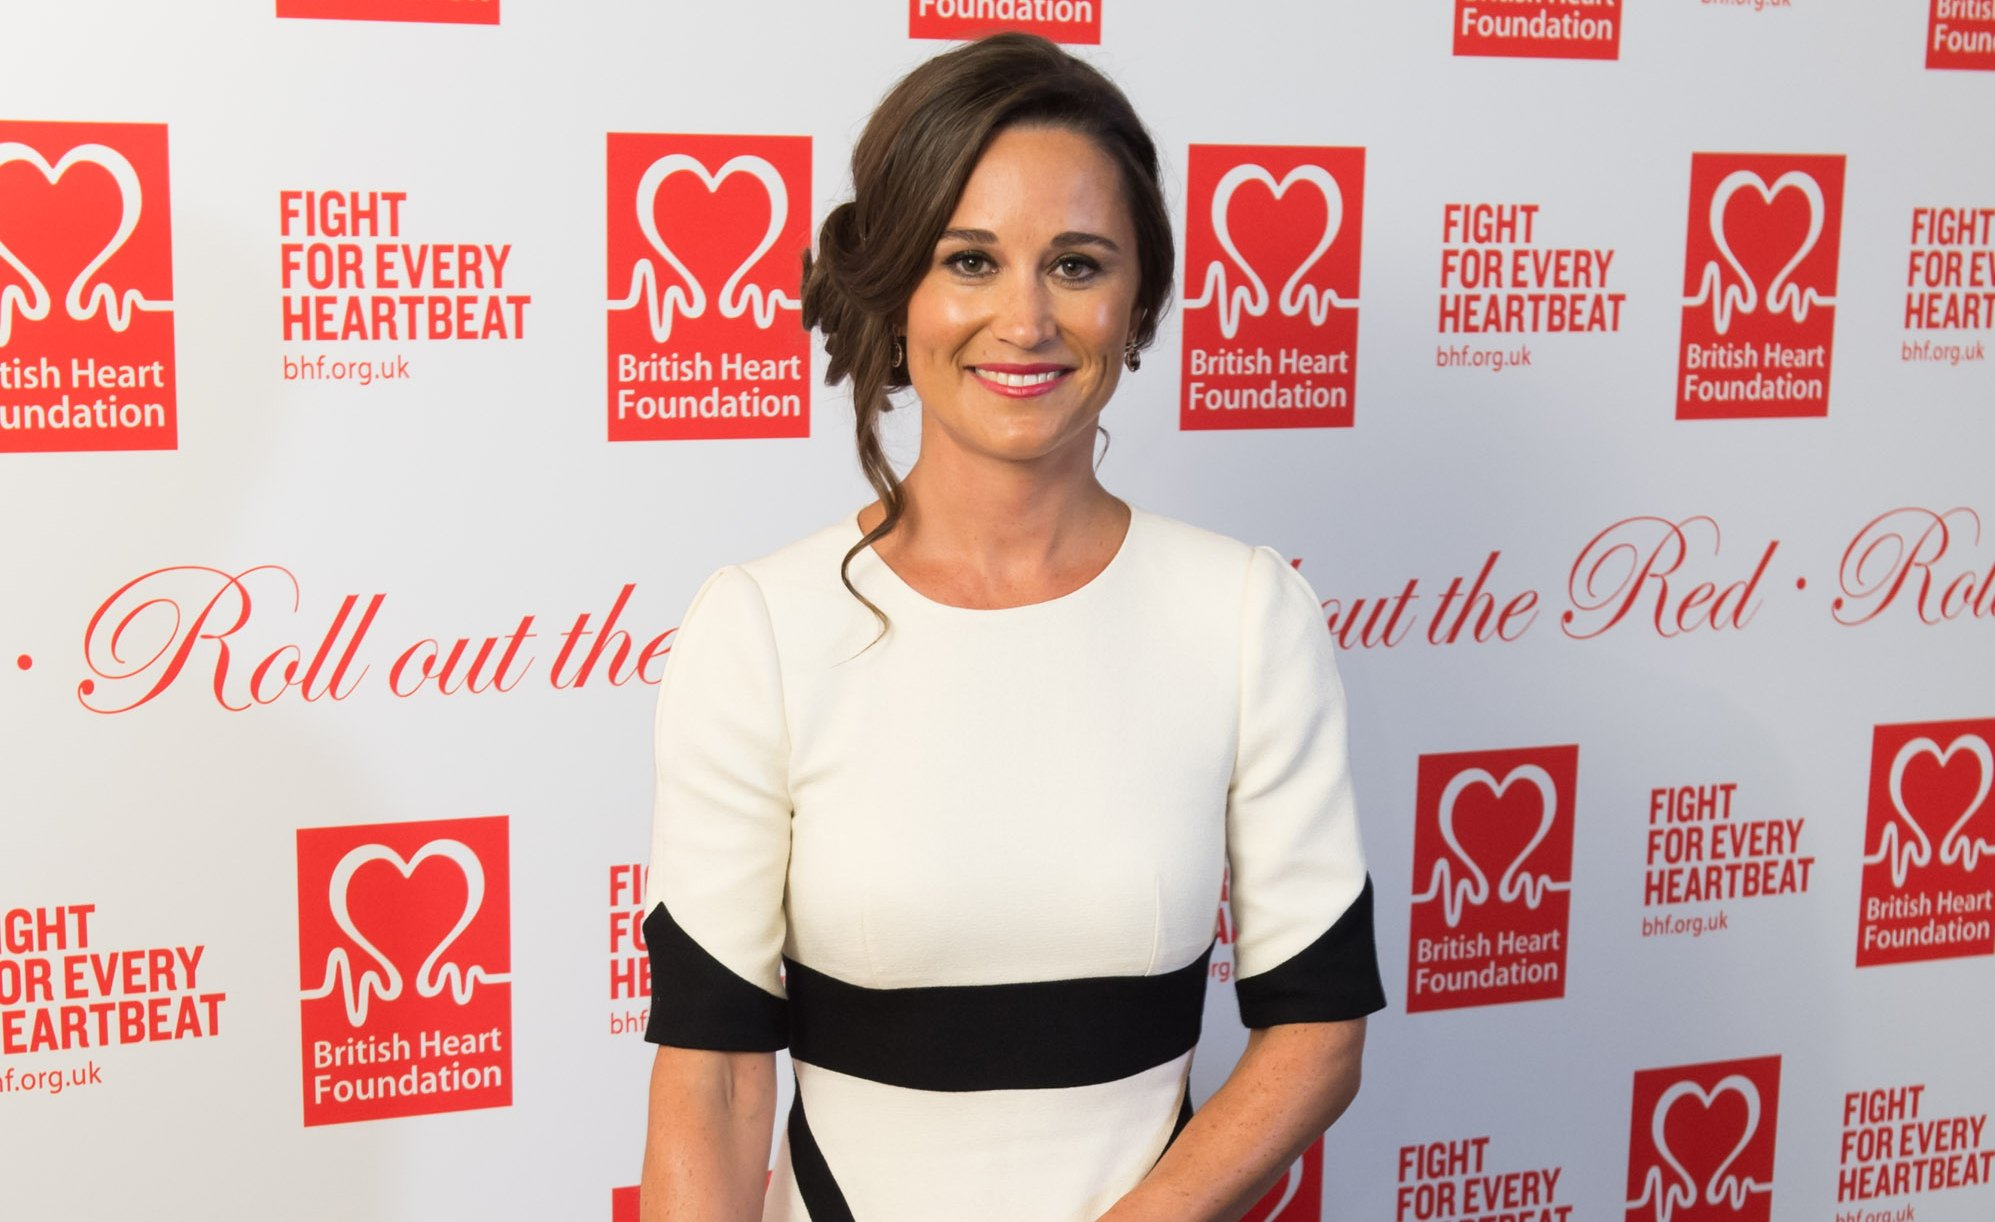 What Does Pippa Middleton Do For a Living? We Investigate